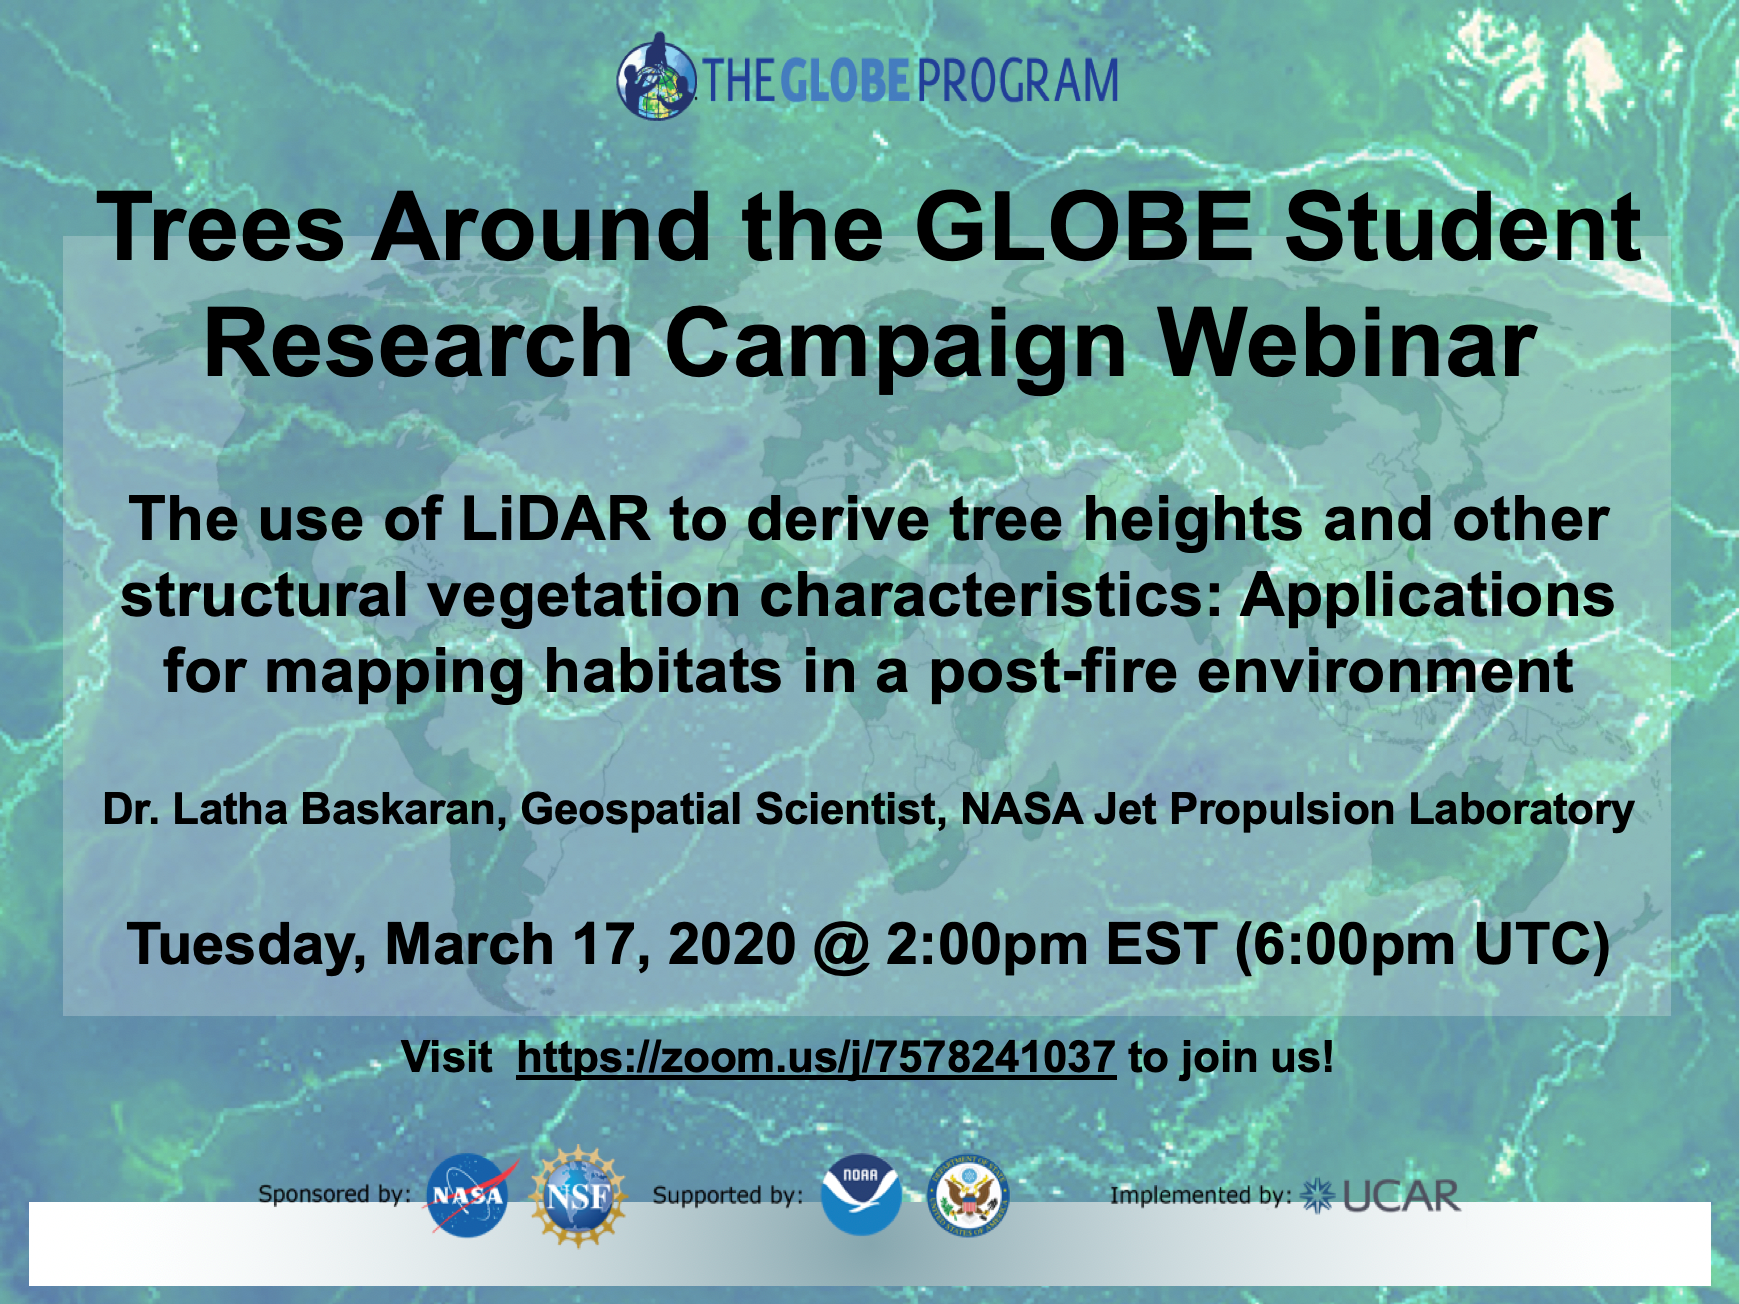 Trees Around the GLOBE 17 March webinar shareable